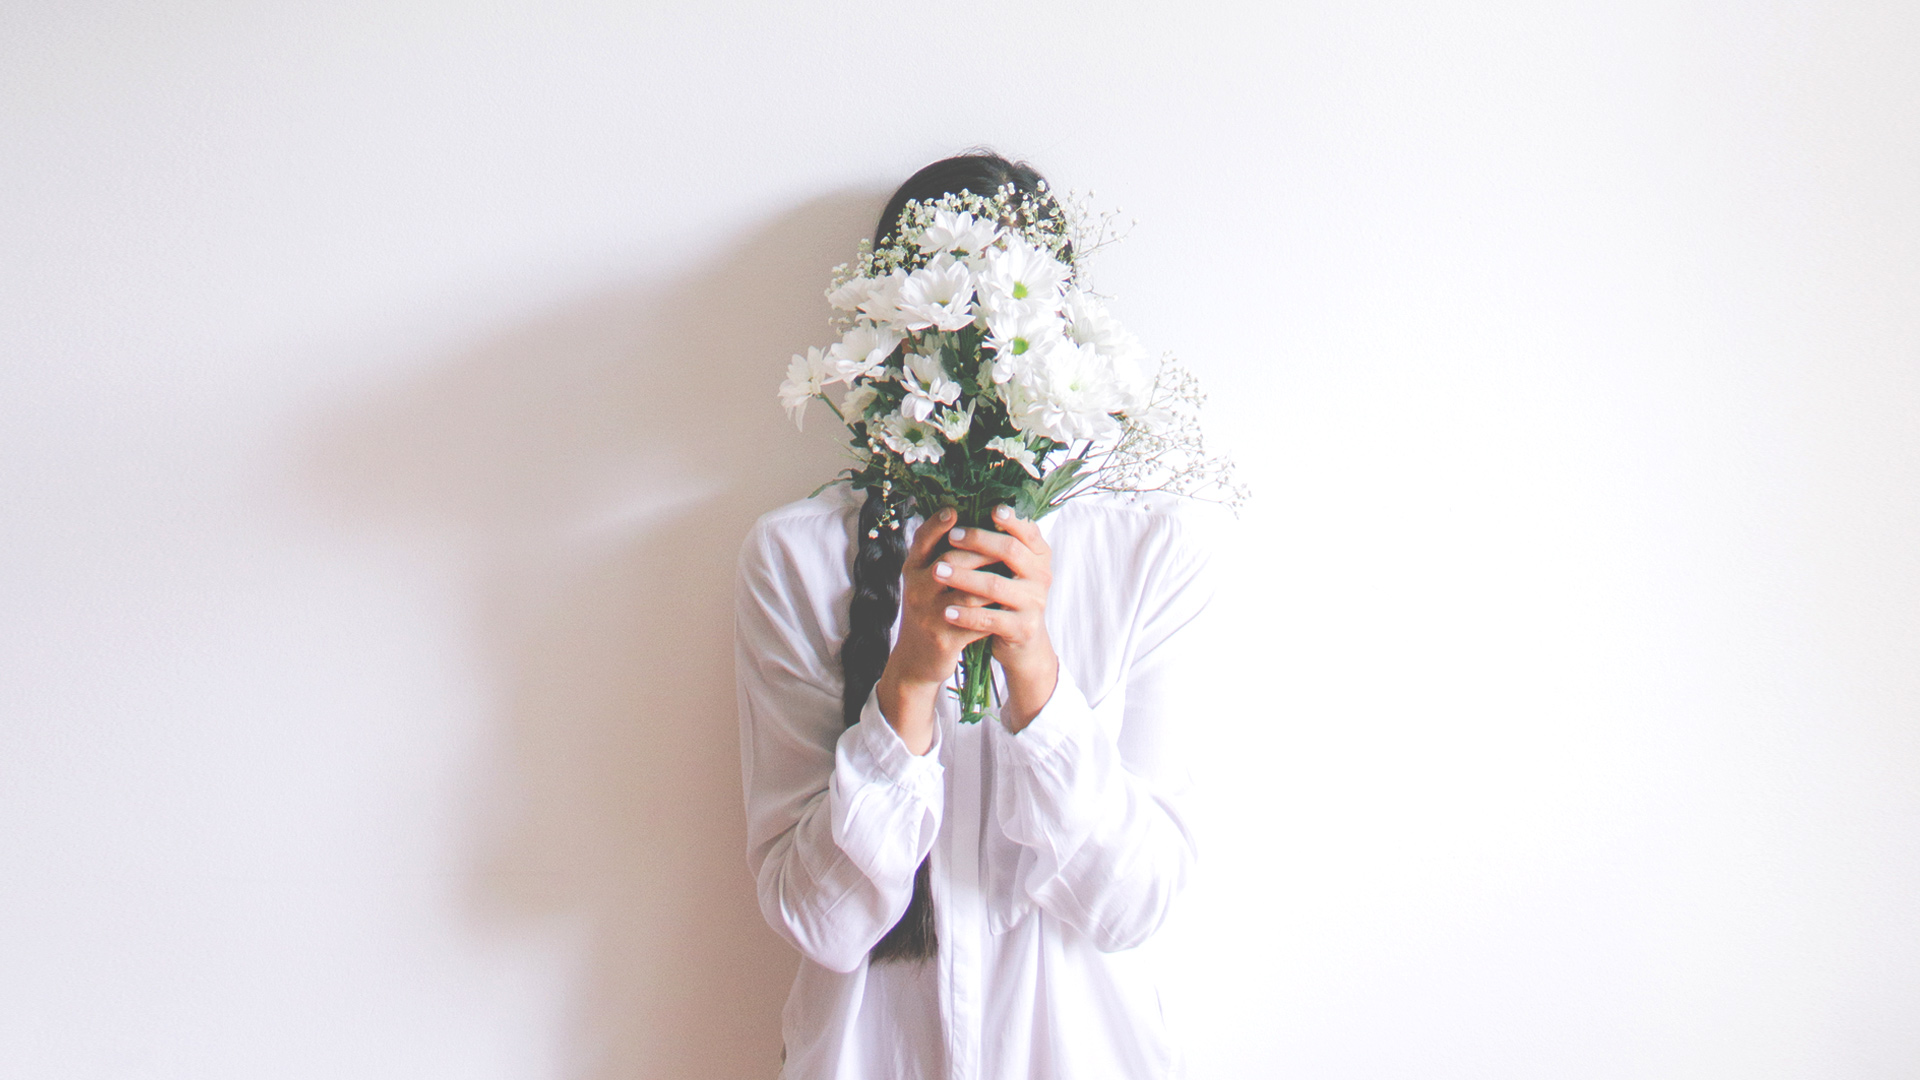 shy introverted both or neither and why does it matter  w hiding behind bouquet of flowers